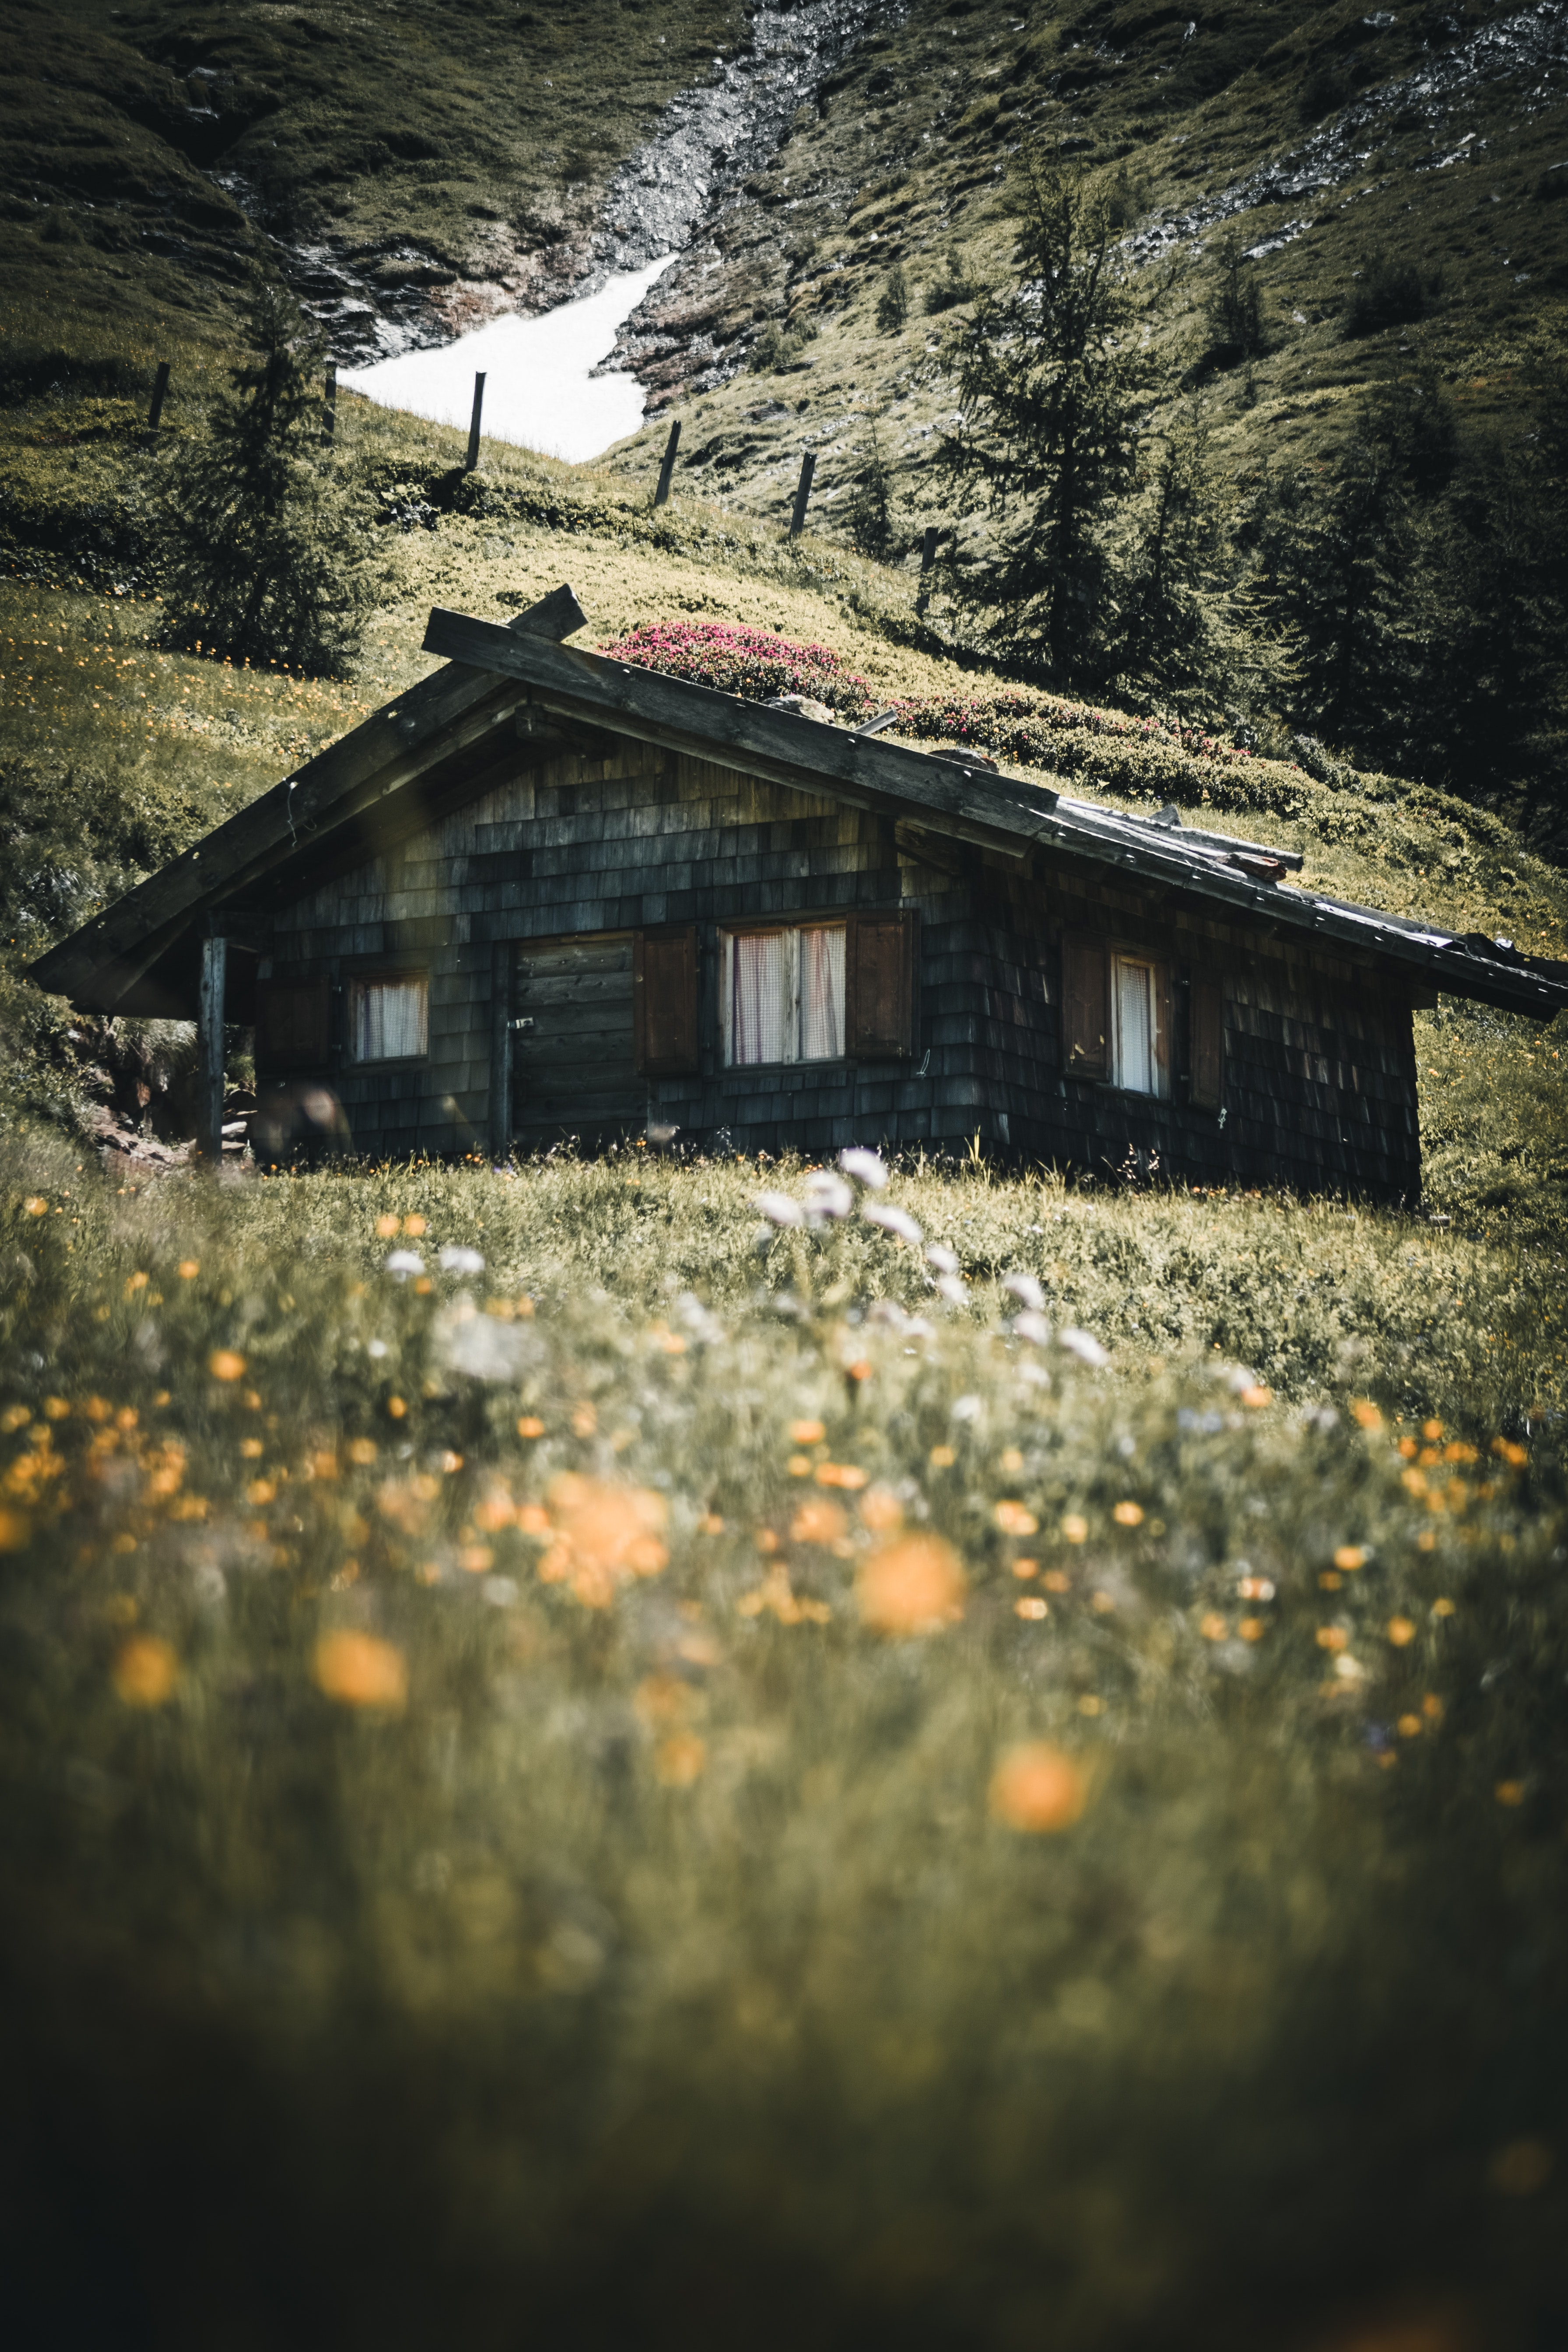 architecture-building-cabin-1809647